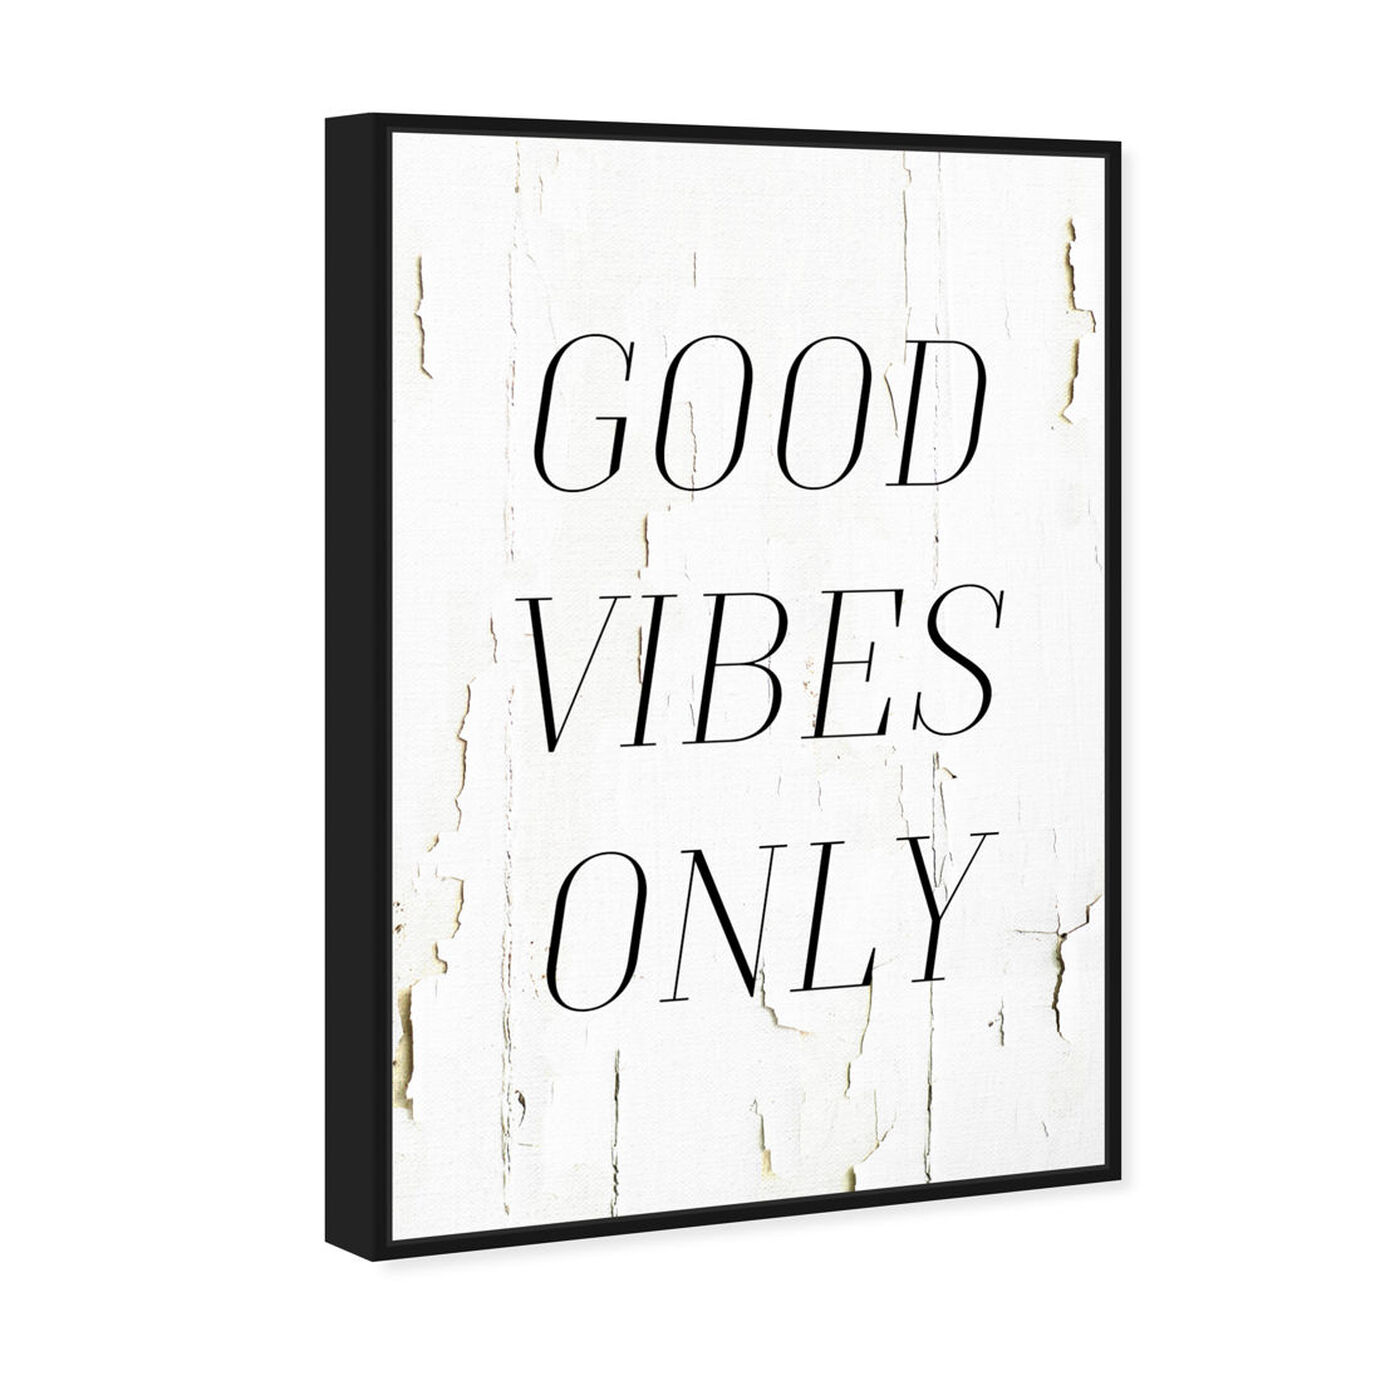 Angled view of The Good Vibes Only featuring typography and quotes and inspirational quotes and sayings art.